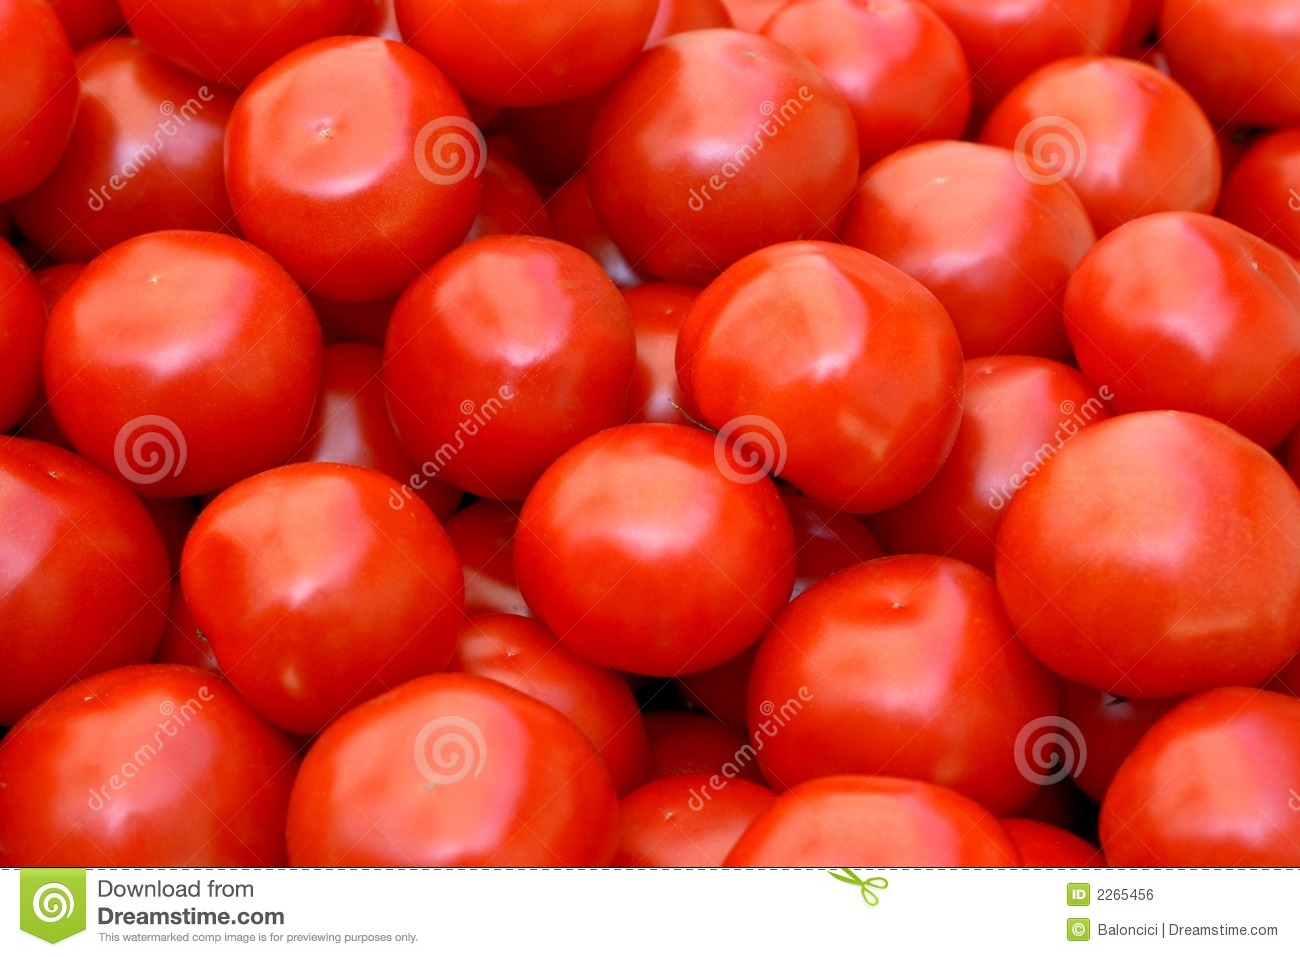 Red Tomatoes Royalty Free Stock Image - Image: 2265456